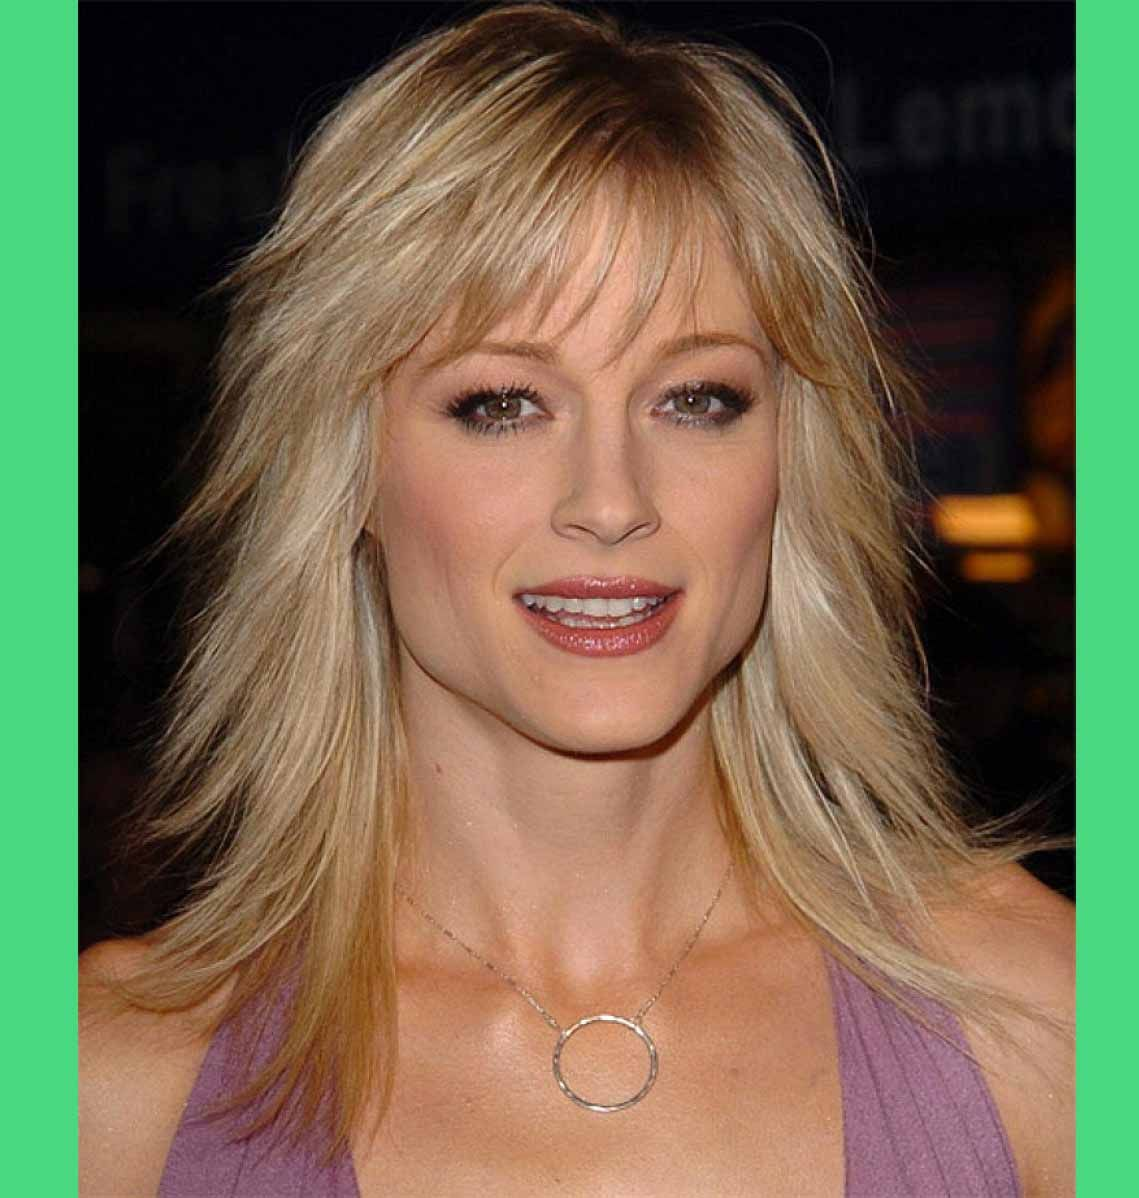 medium-length-blonde-hairstyles-for-thin-fine-hair-with-side-bangs